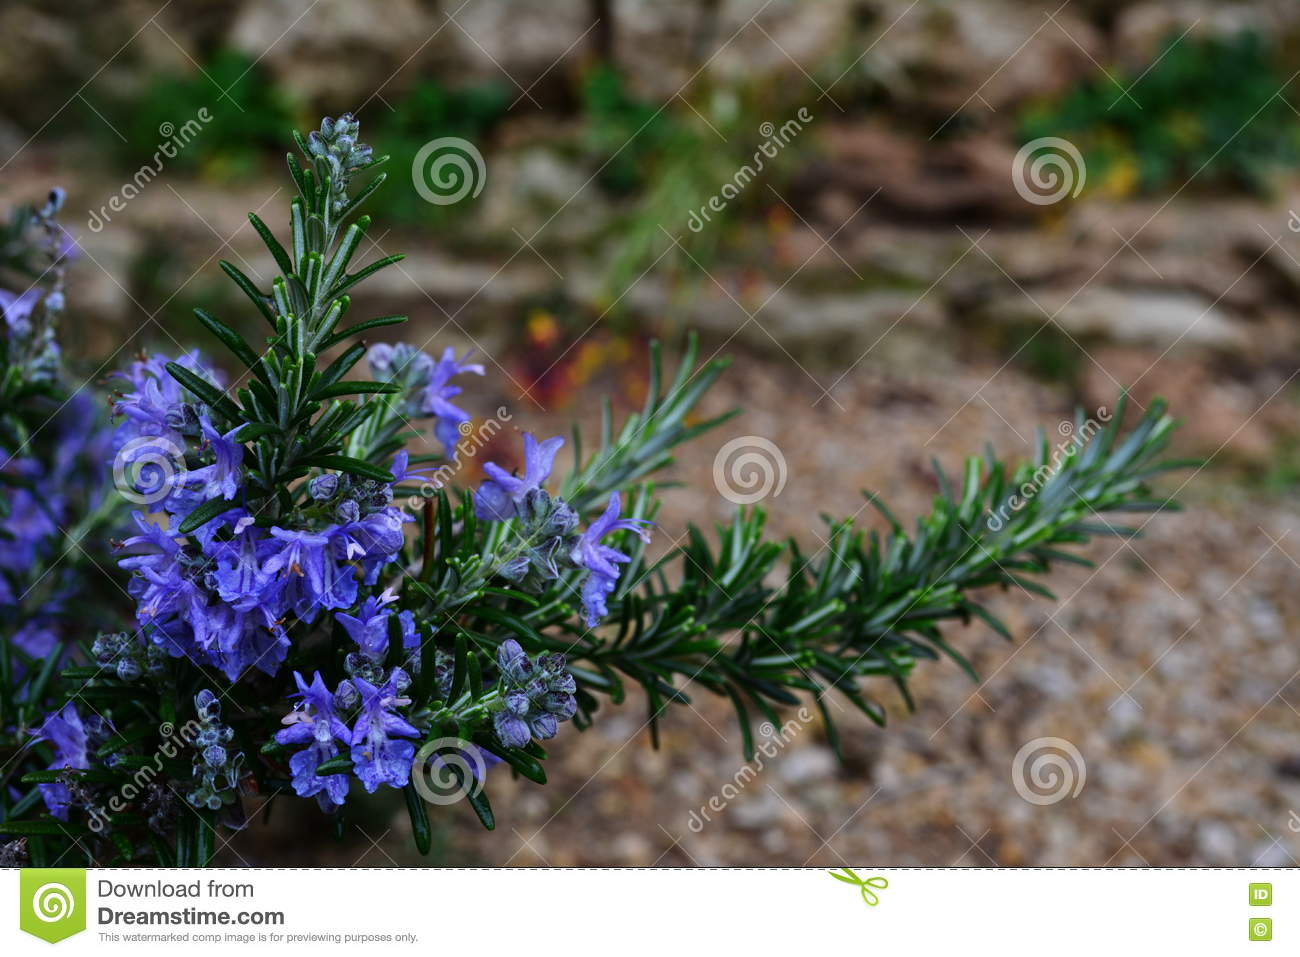 Rosemary With Blue Flowers Stock Photo Image Of Garden 73984186